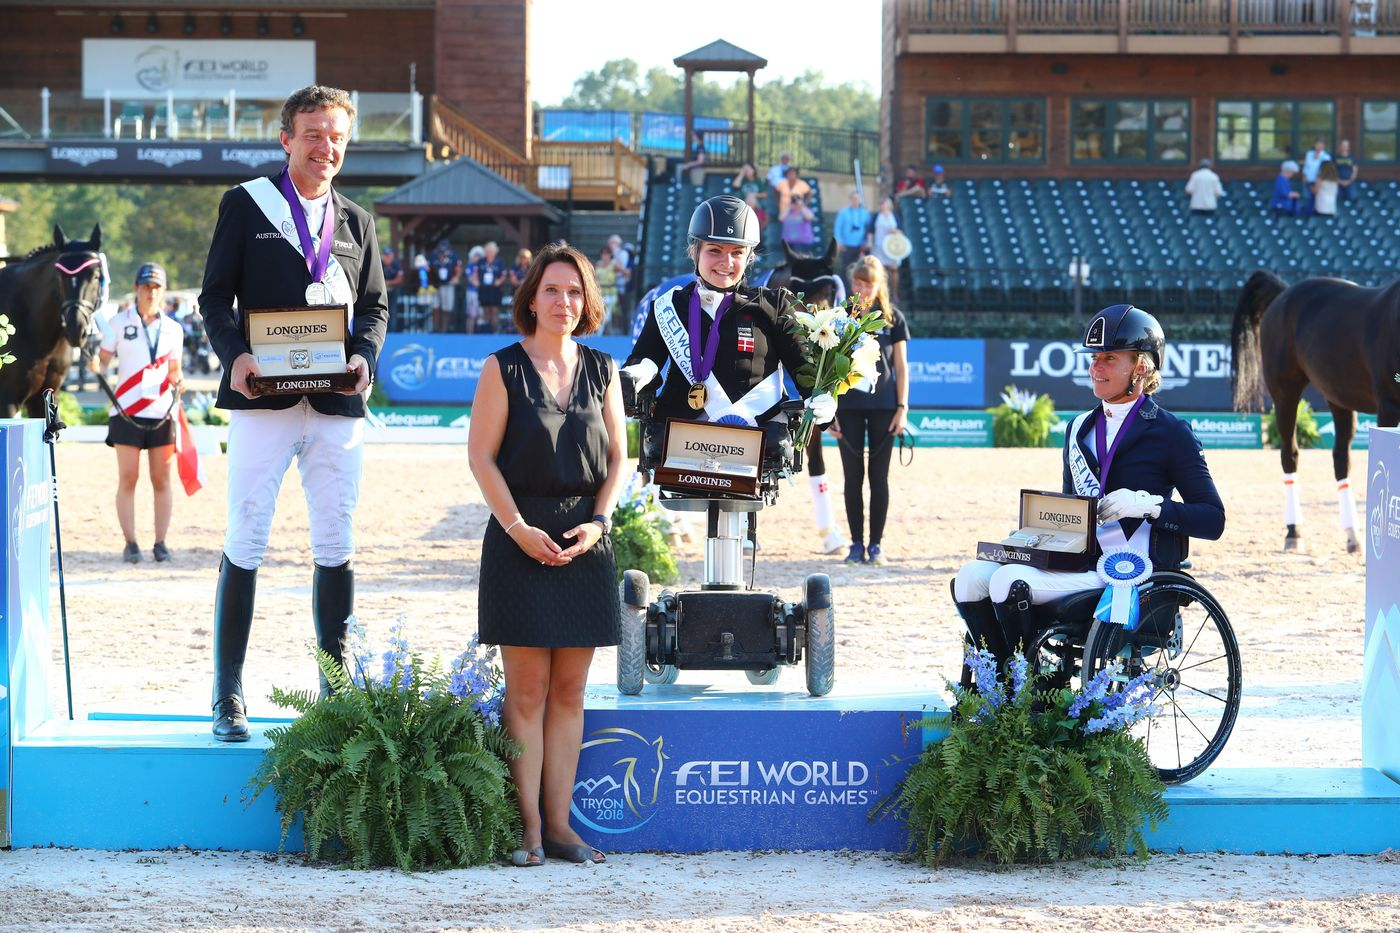 Longines Show Jumping Event: The FEI World Equestrian Games ended beautifully with Germany topping the medal table   8